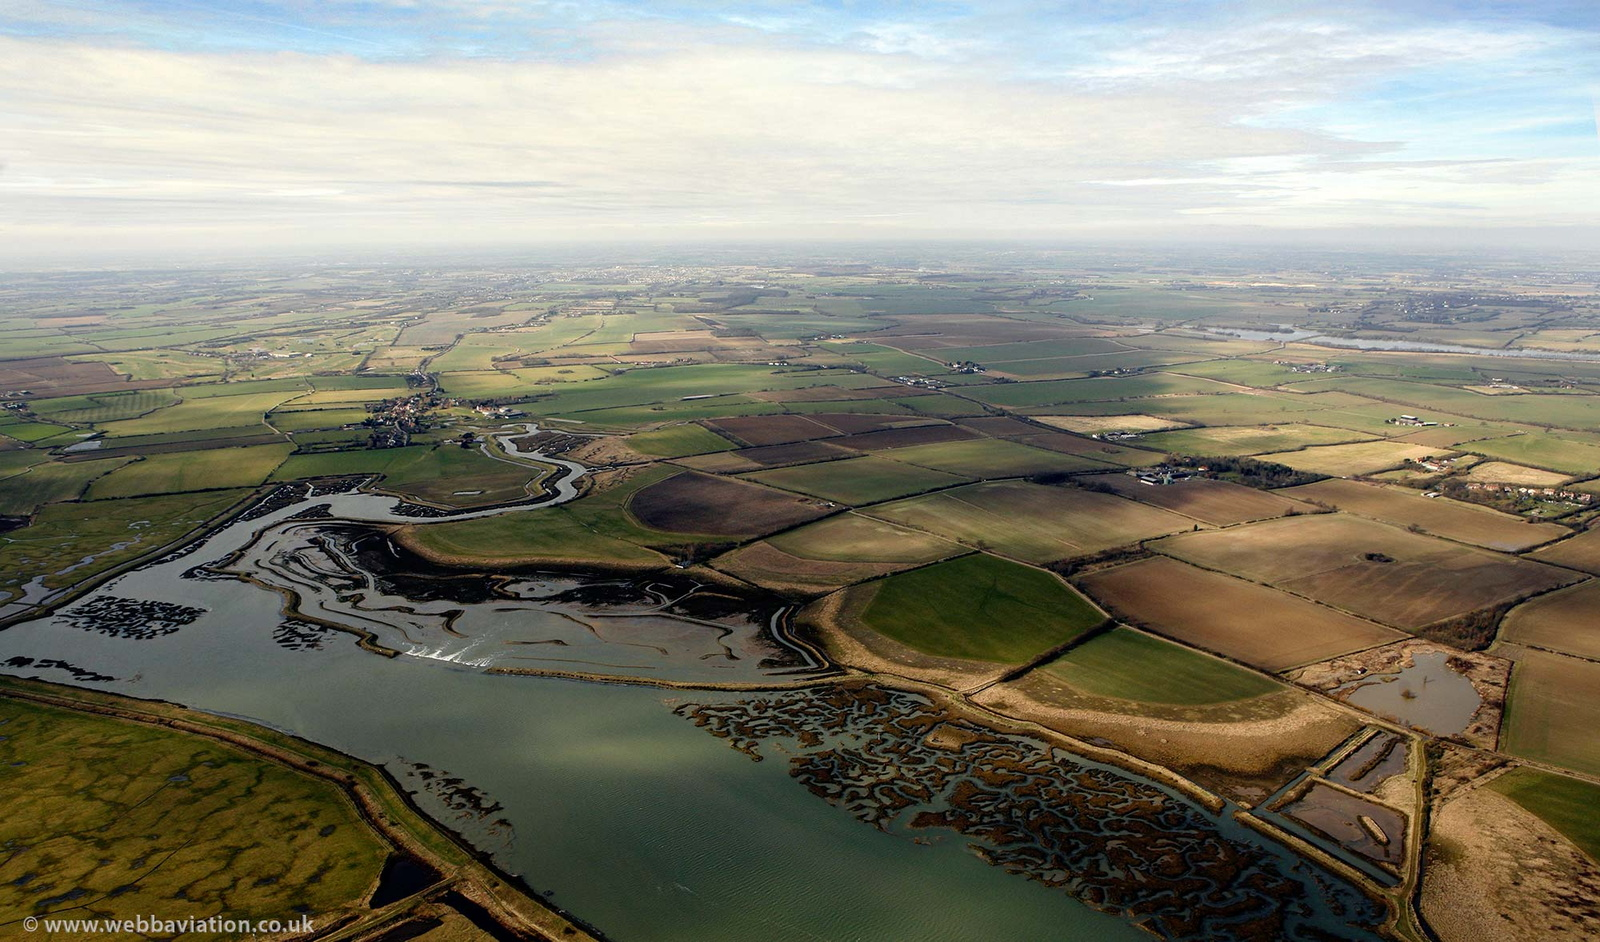 Abbotts Hall Managed Coastal Realignment Scheme from the air